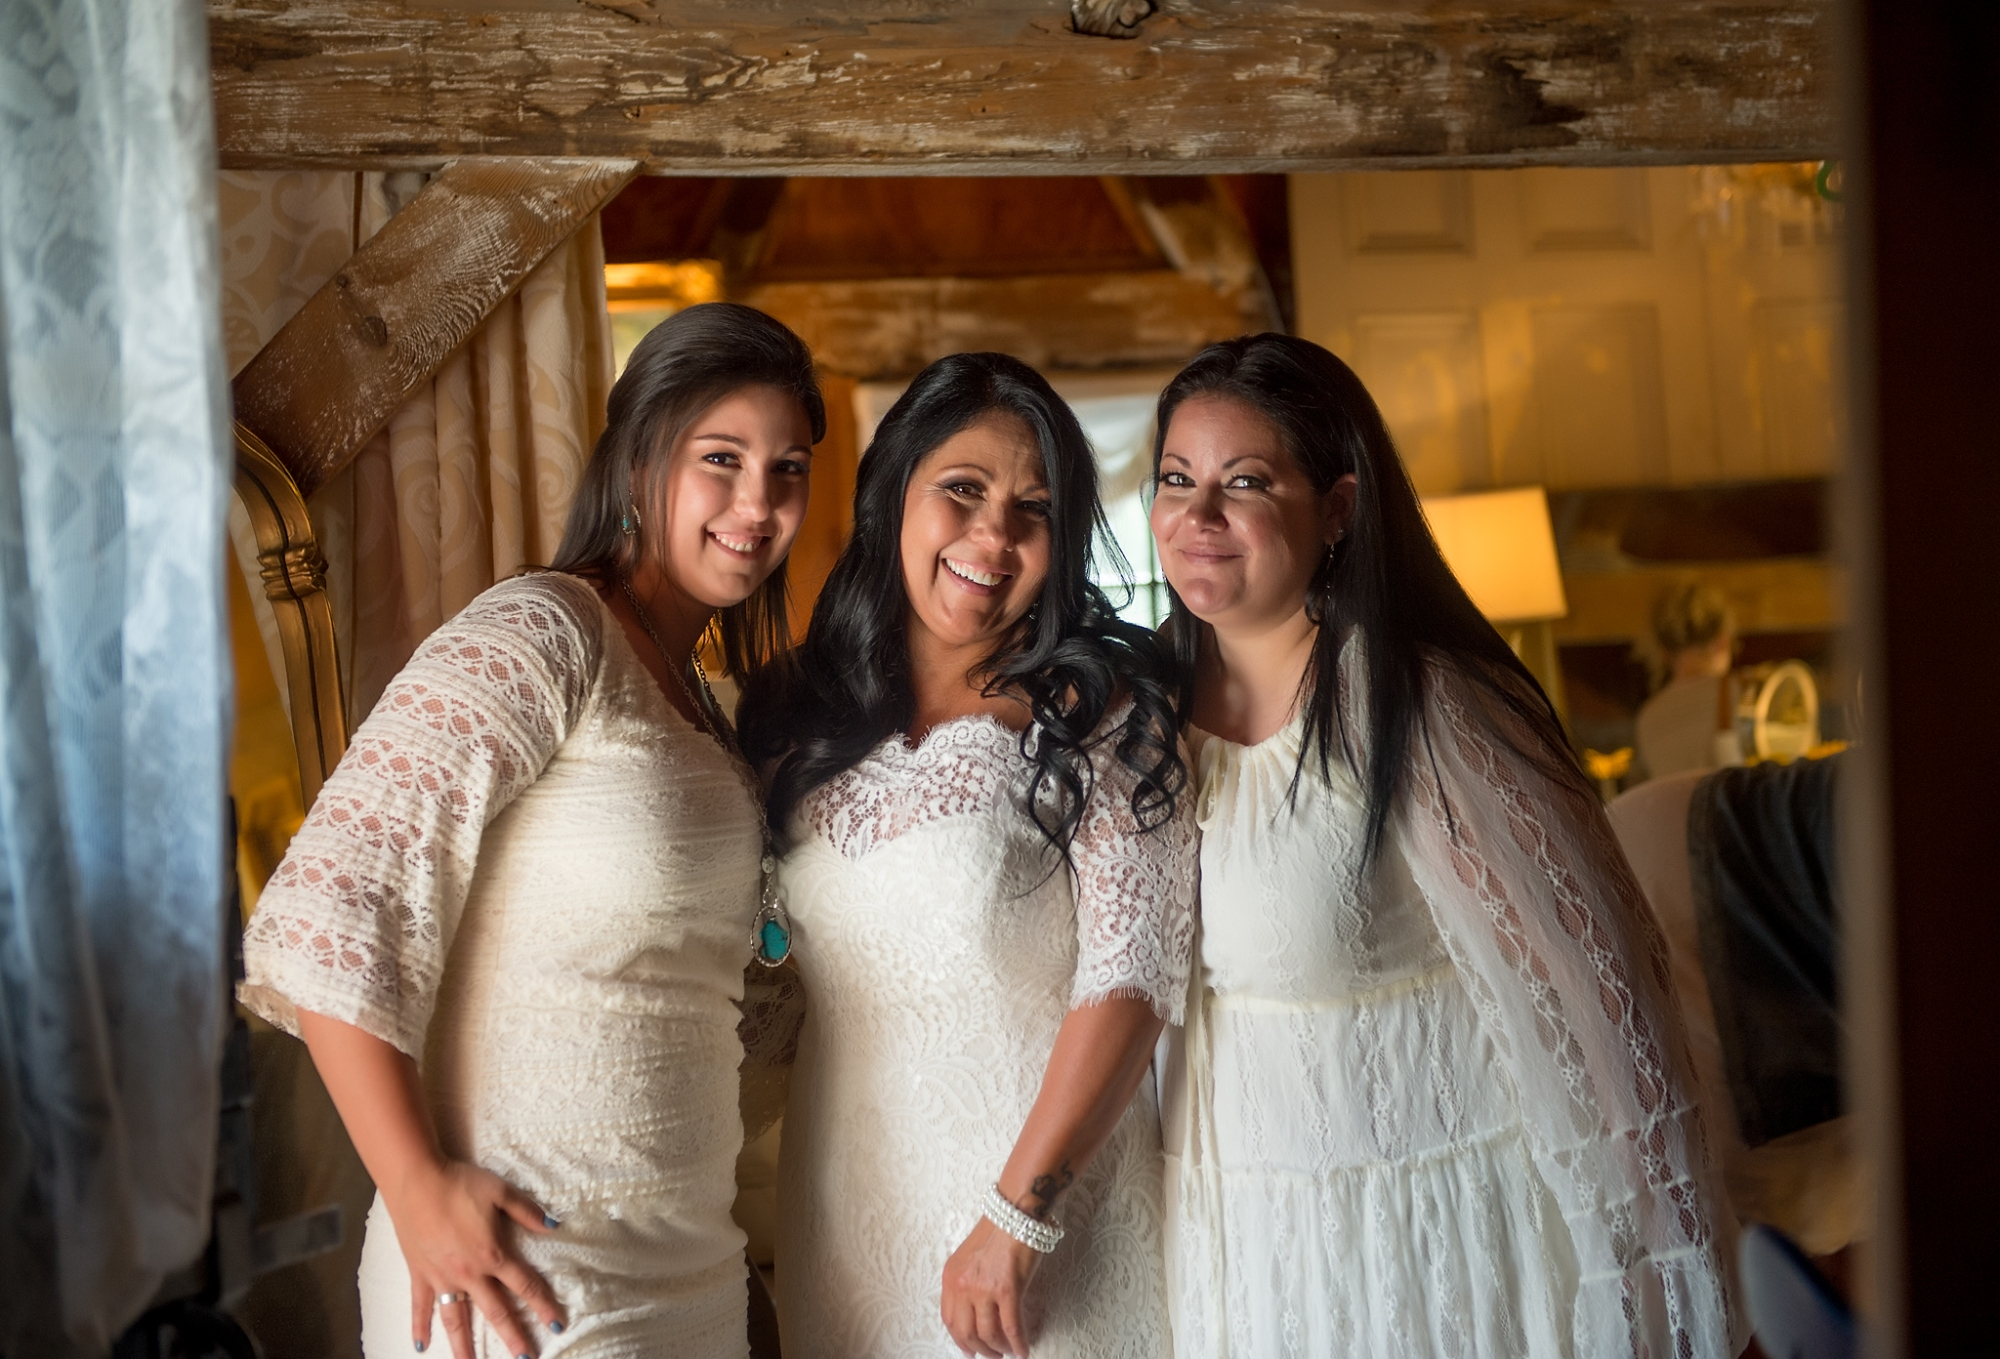 Jacks-Barn-Wedding-Janine-Collette-Photography24